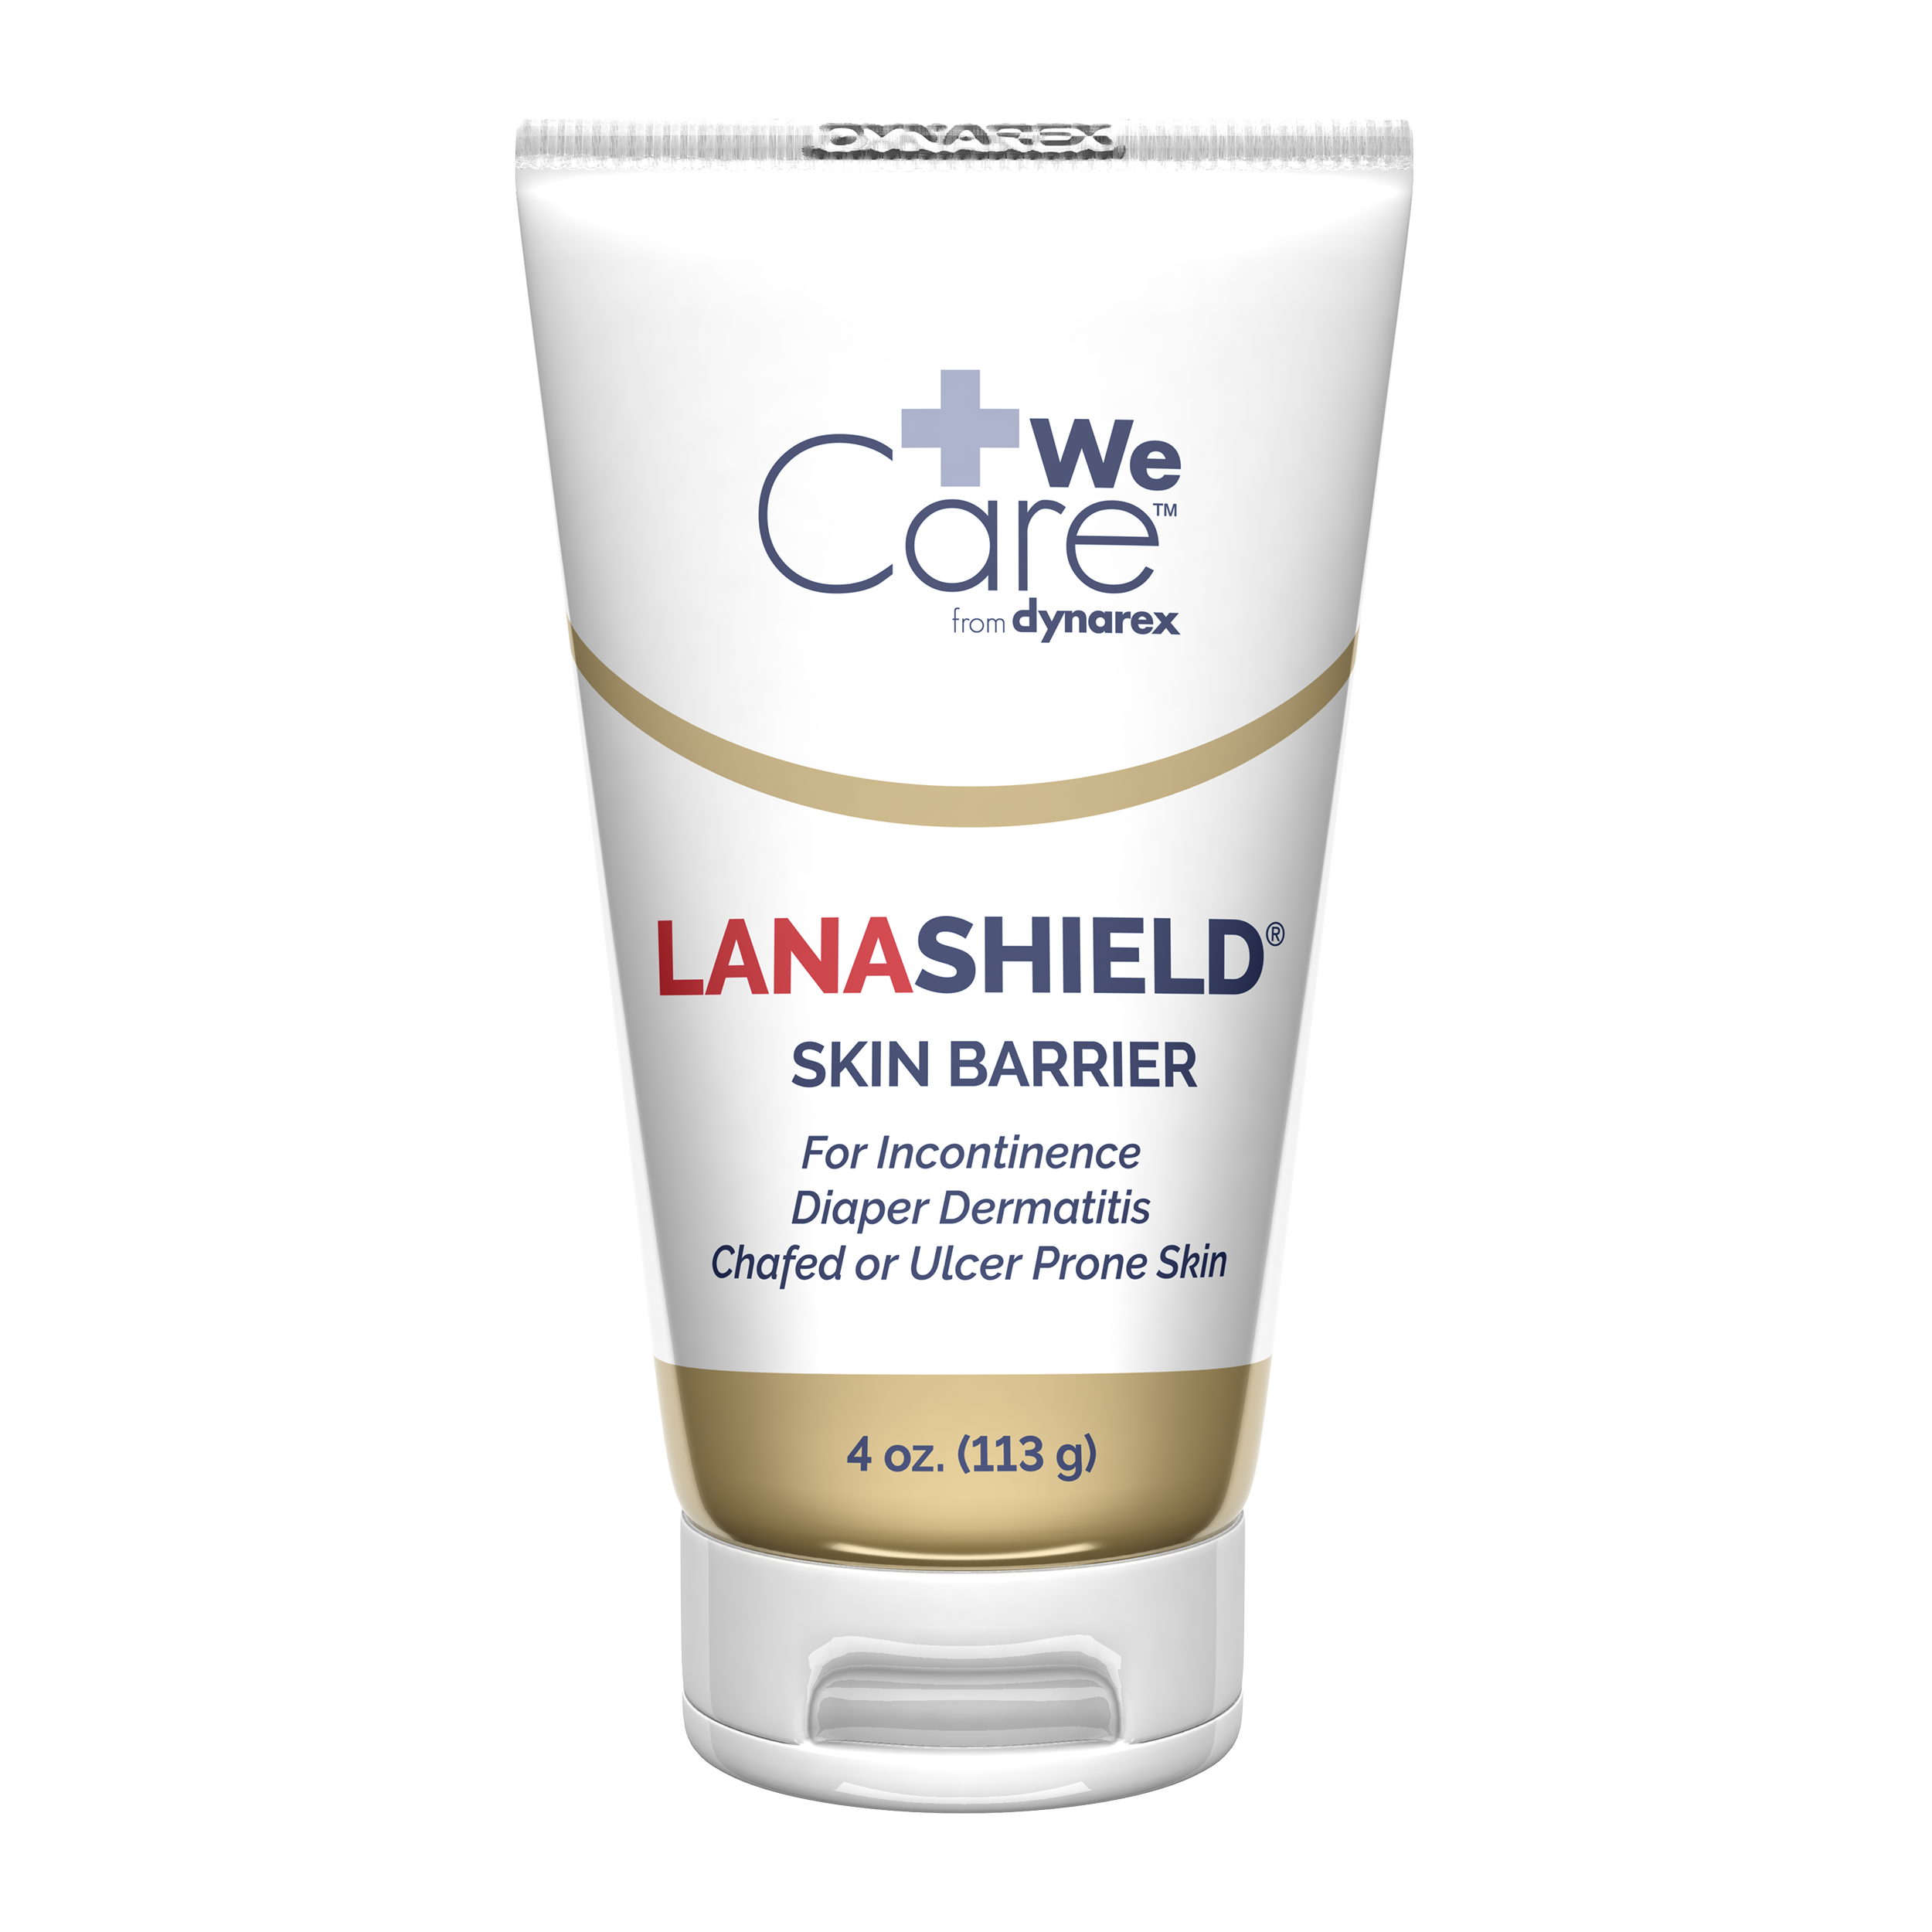 Dynarex® LanaShield Skin Protectant Cream compares to Lantiseptic